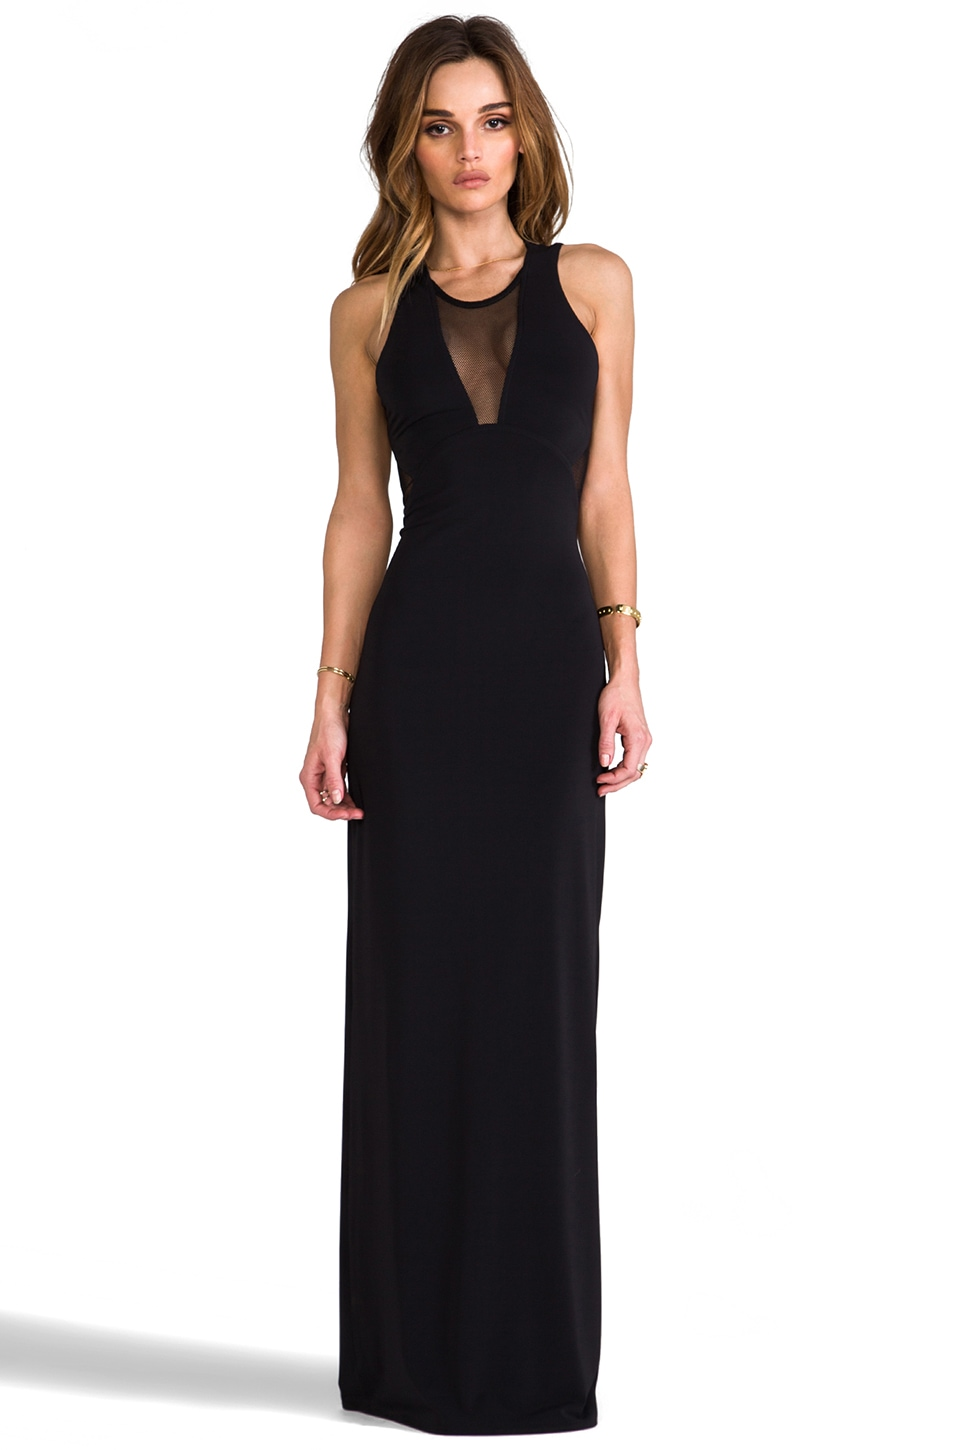 Cut25 by Yigal Azrouel Mesh Insert Gown in Jet